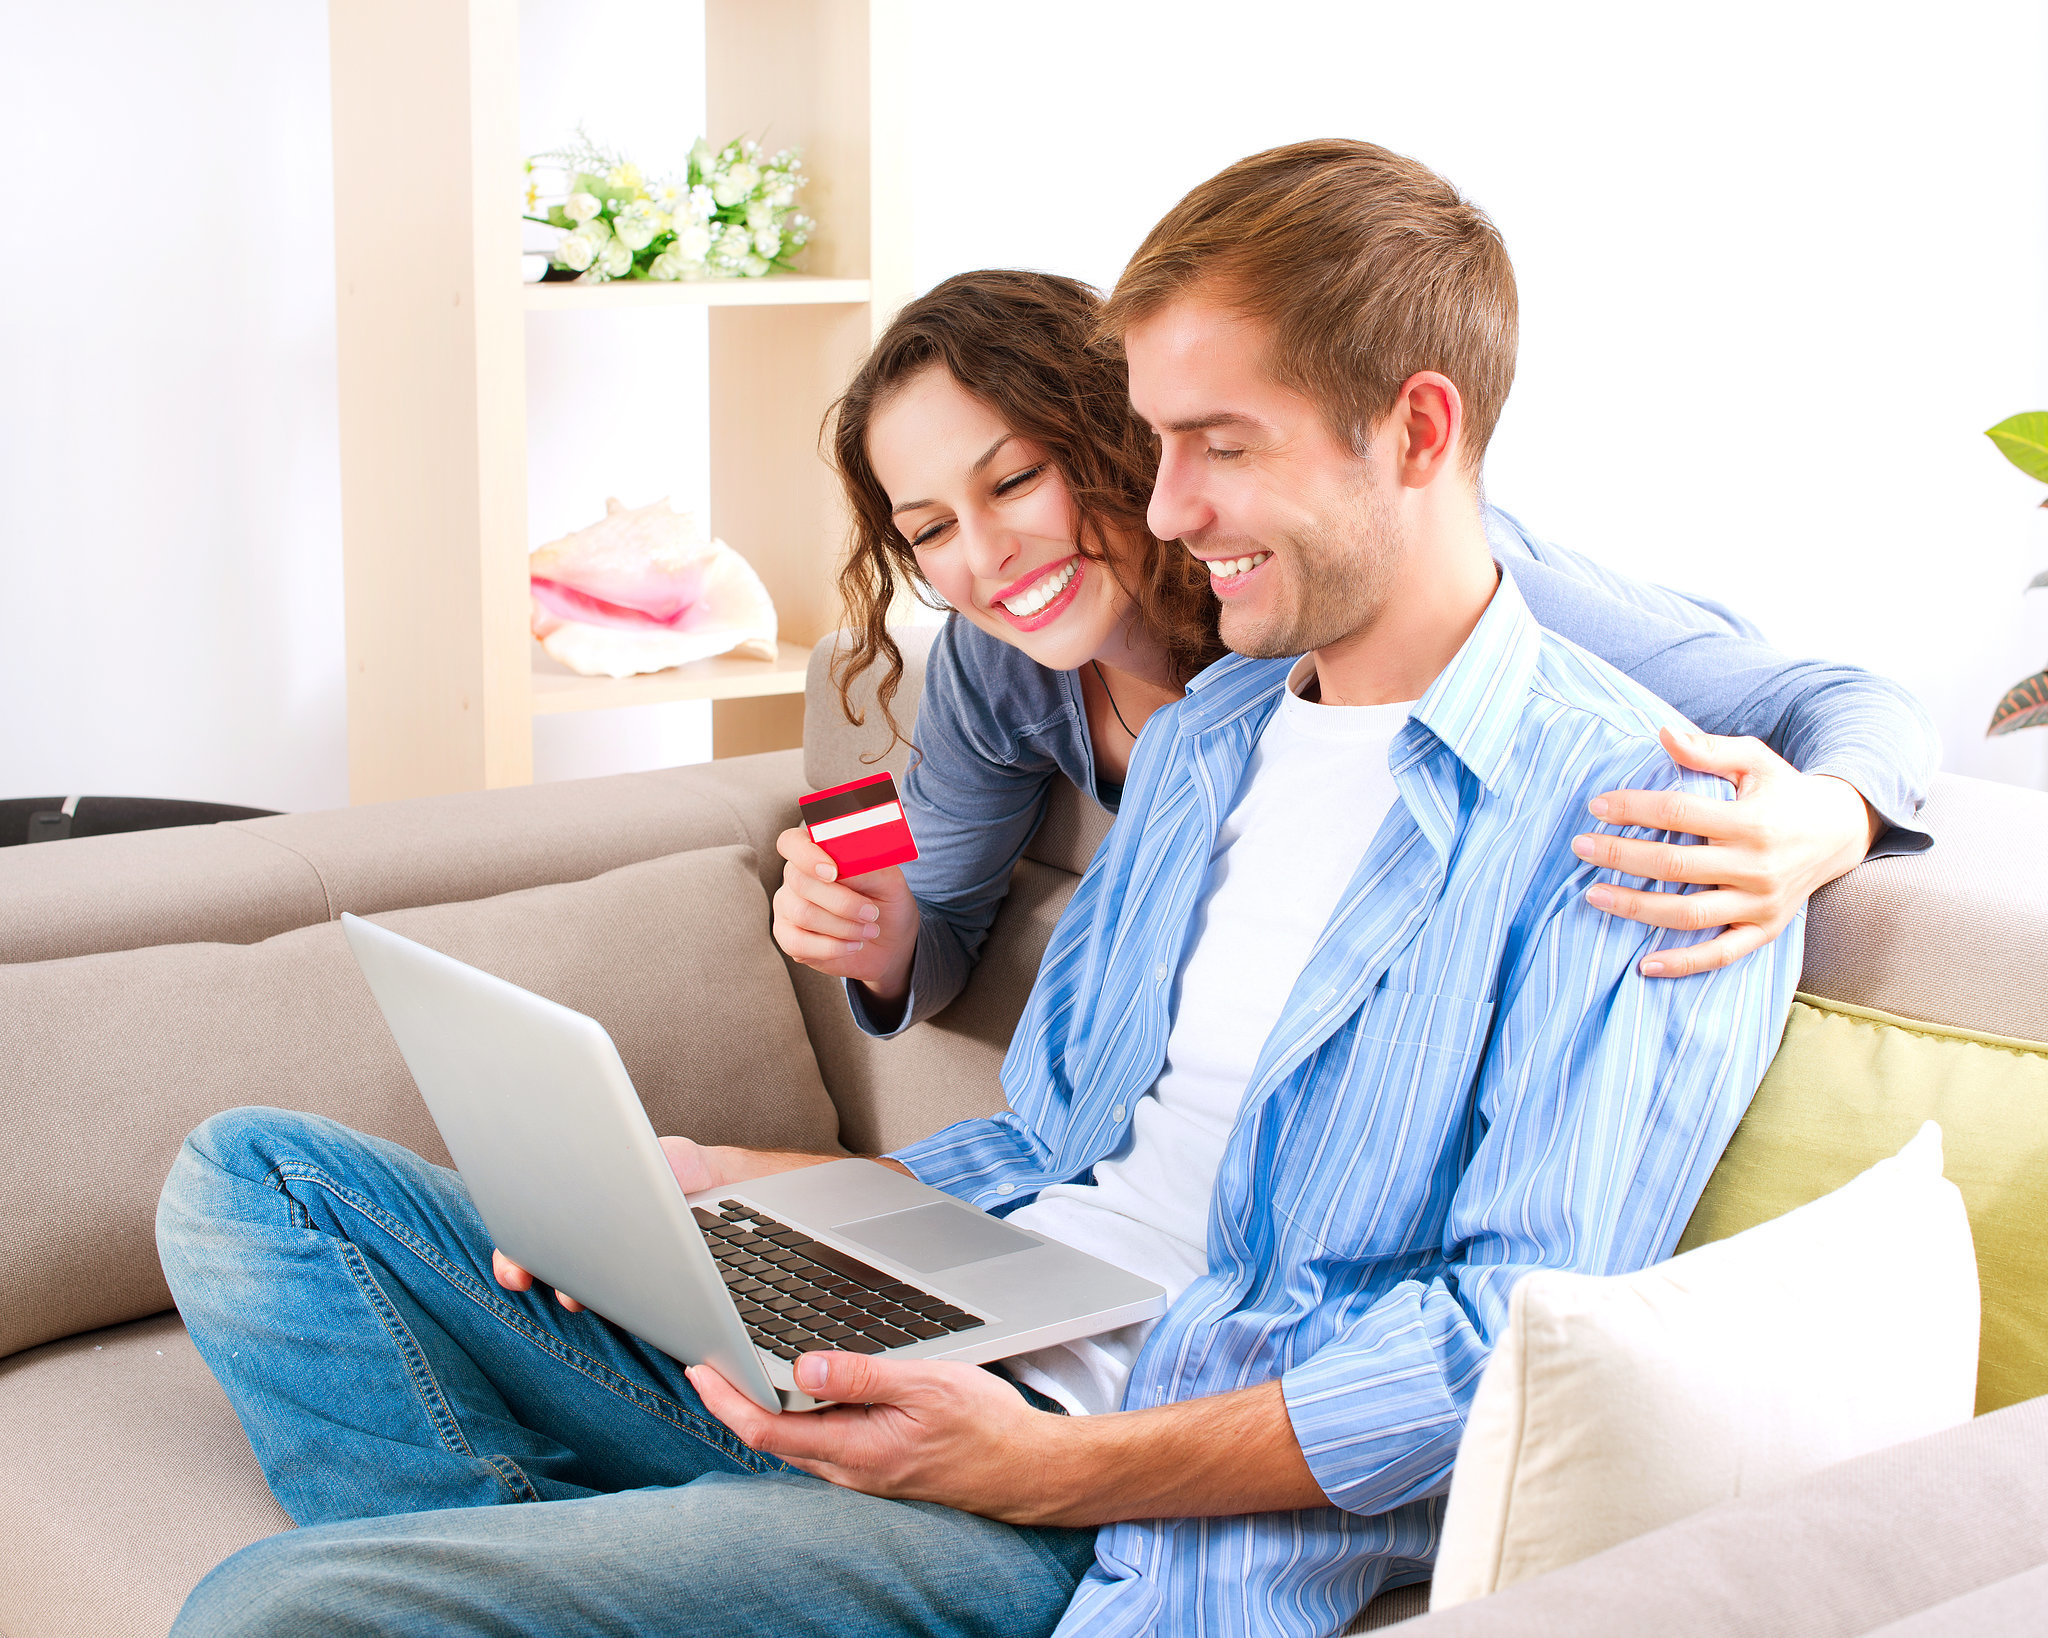 How to divide expenses as a couple popsugar smart living - Young couple modern homes ...